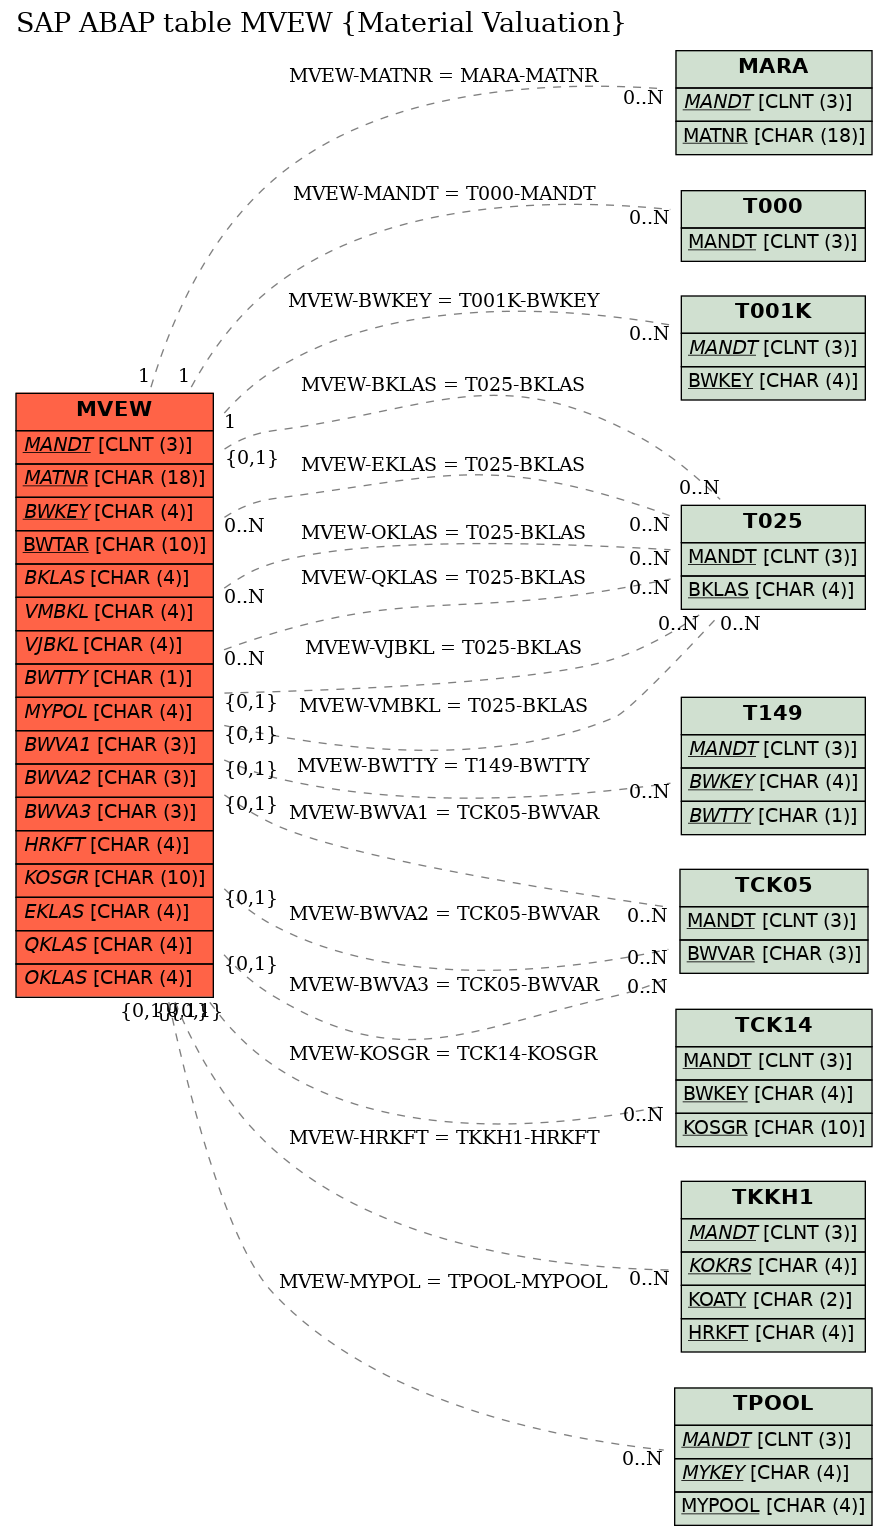 E-R Diagram for table MVEW (Material Valuation)